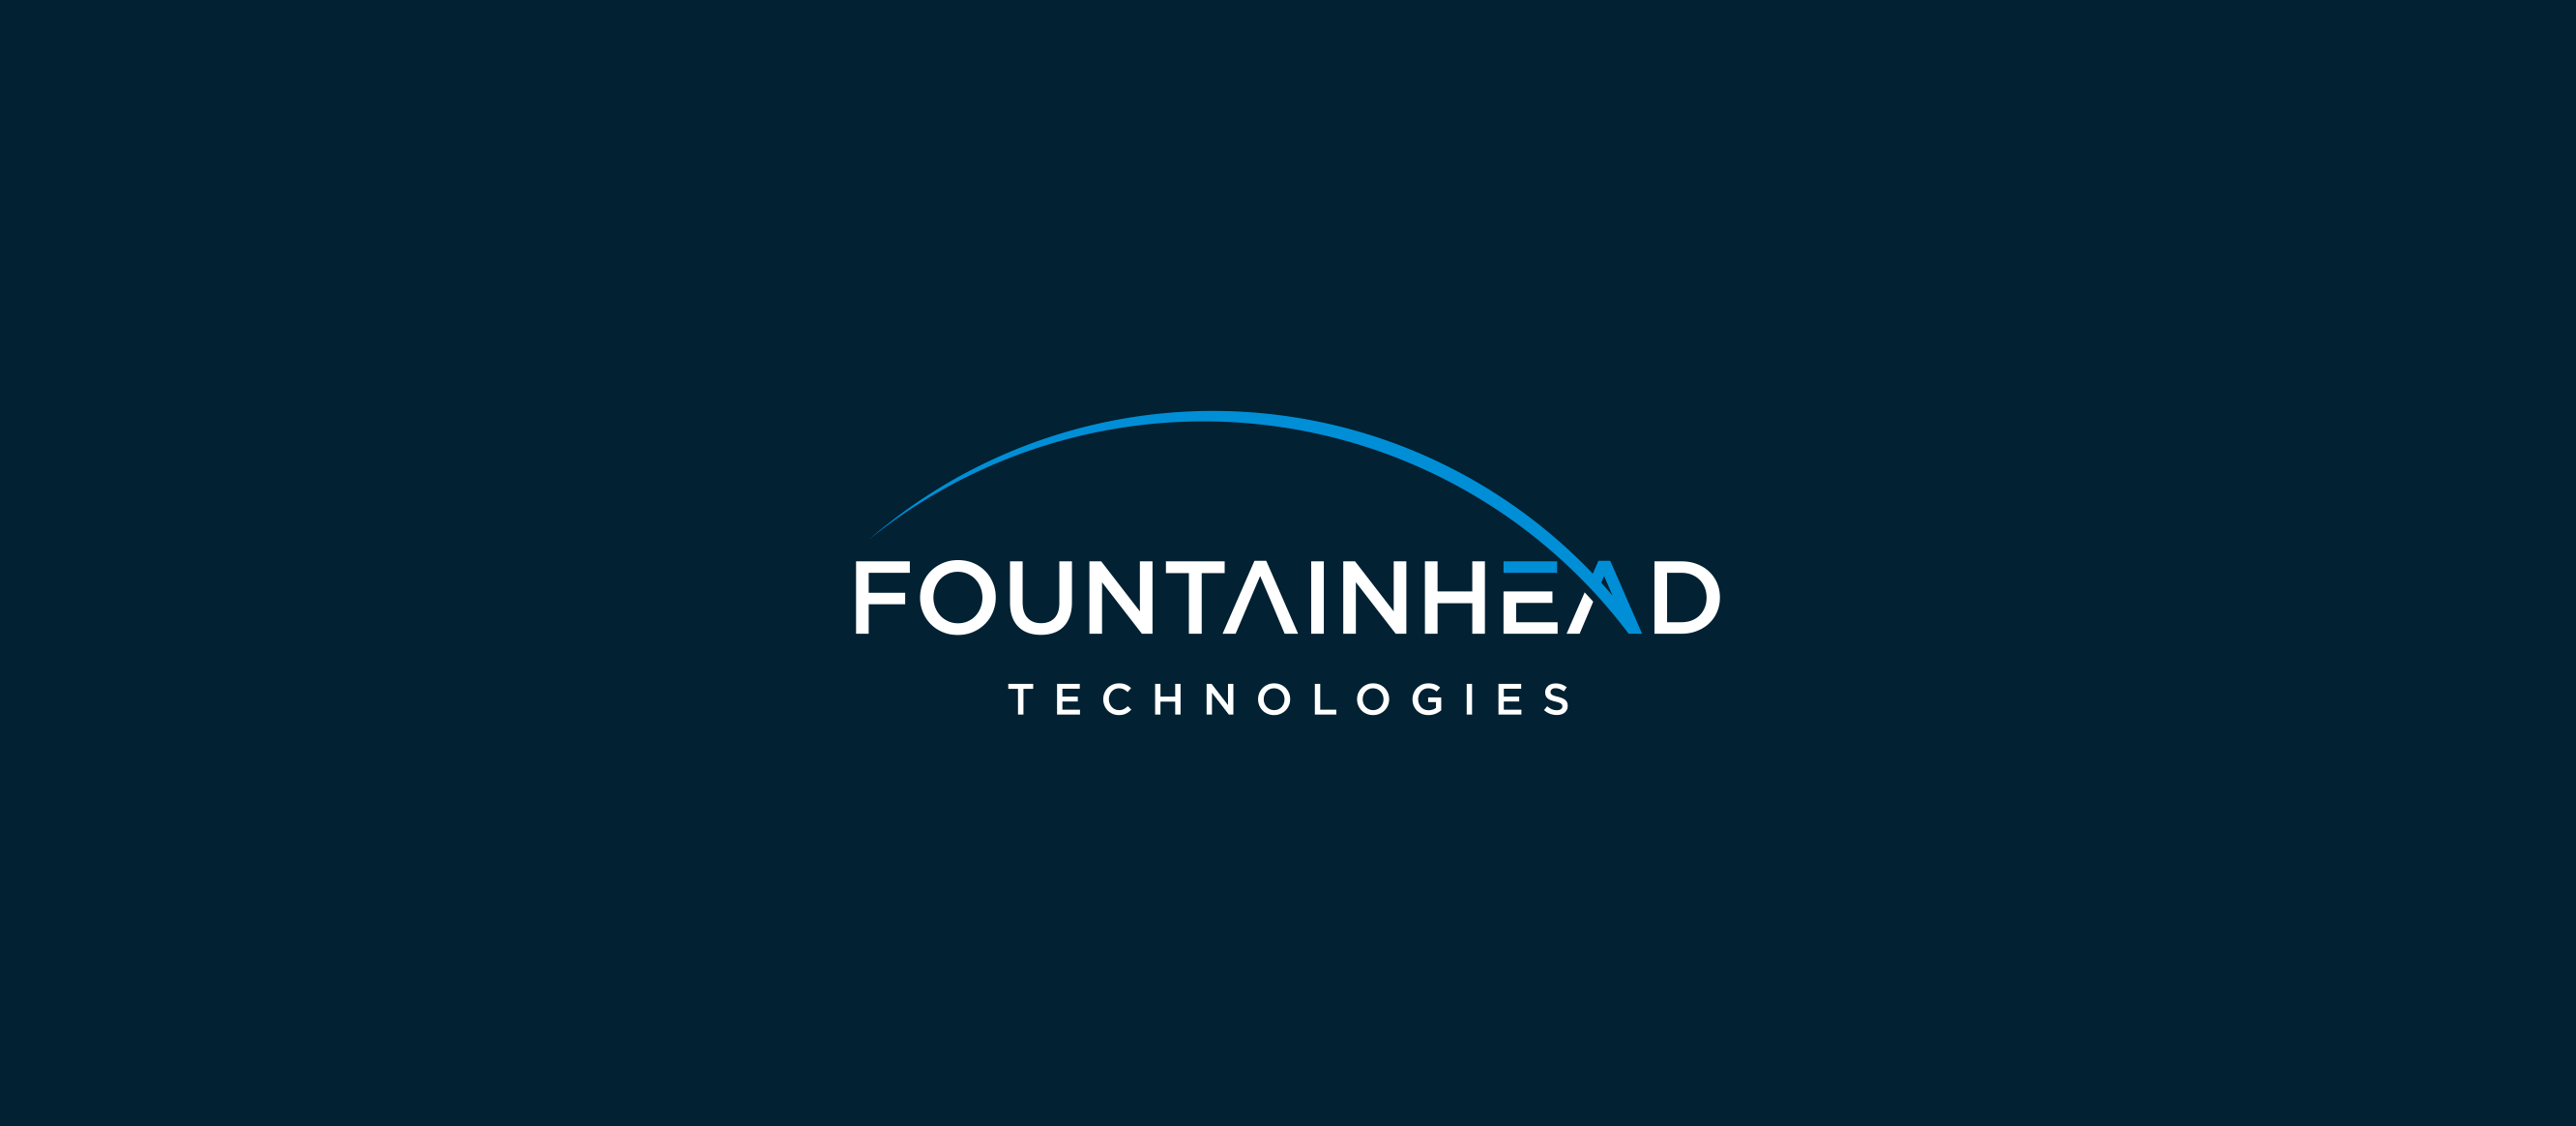 Fountainhead Technologies, Inc.